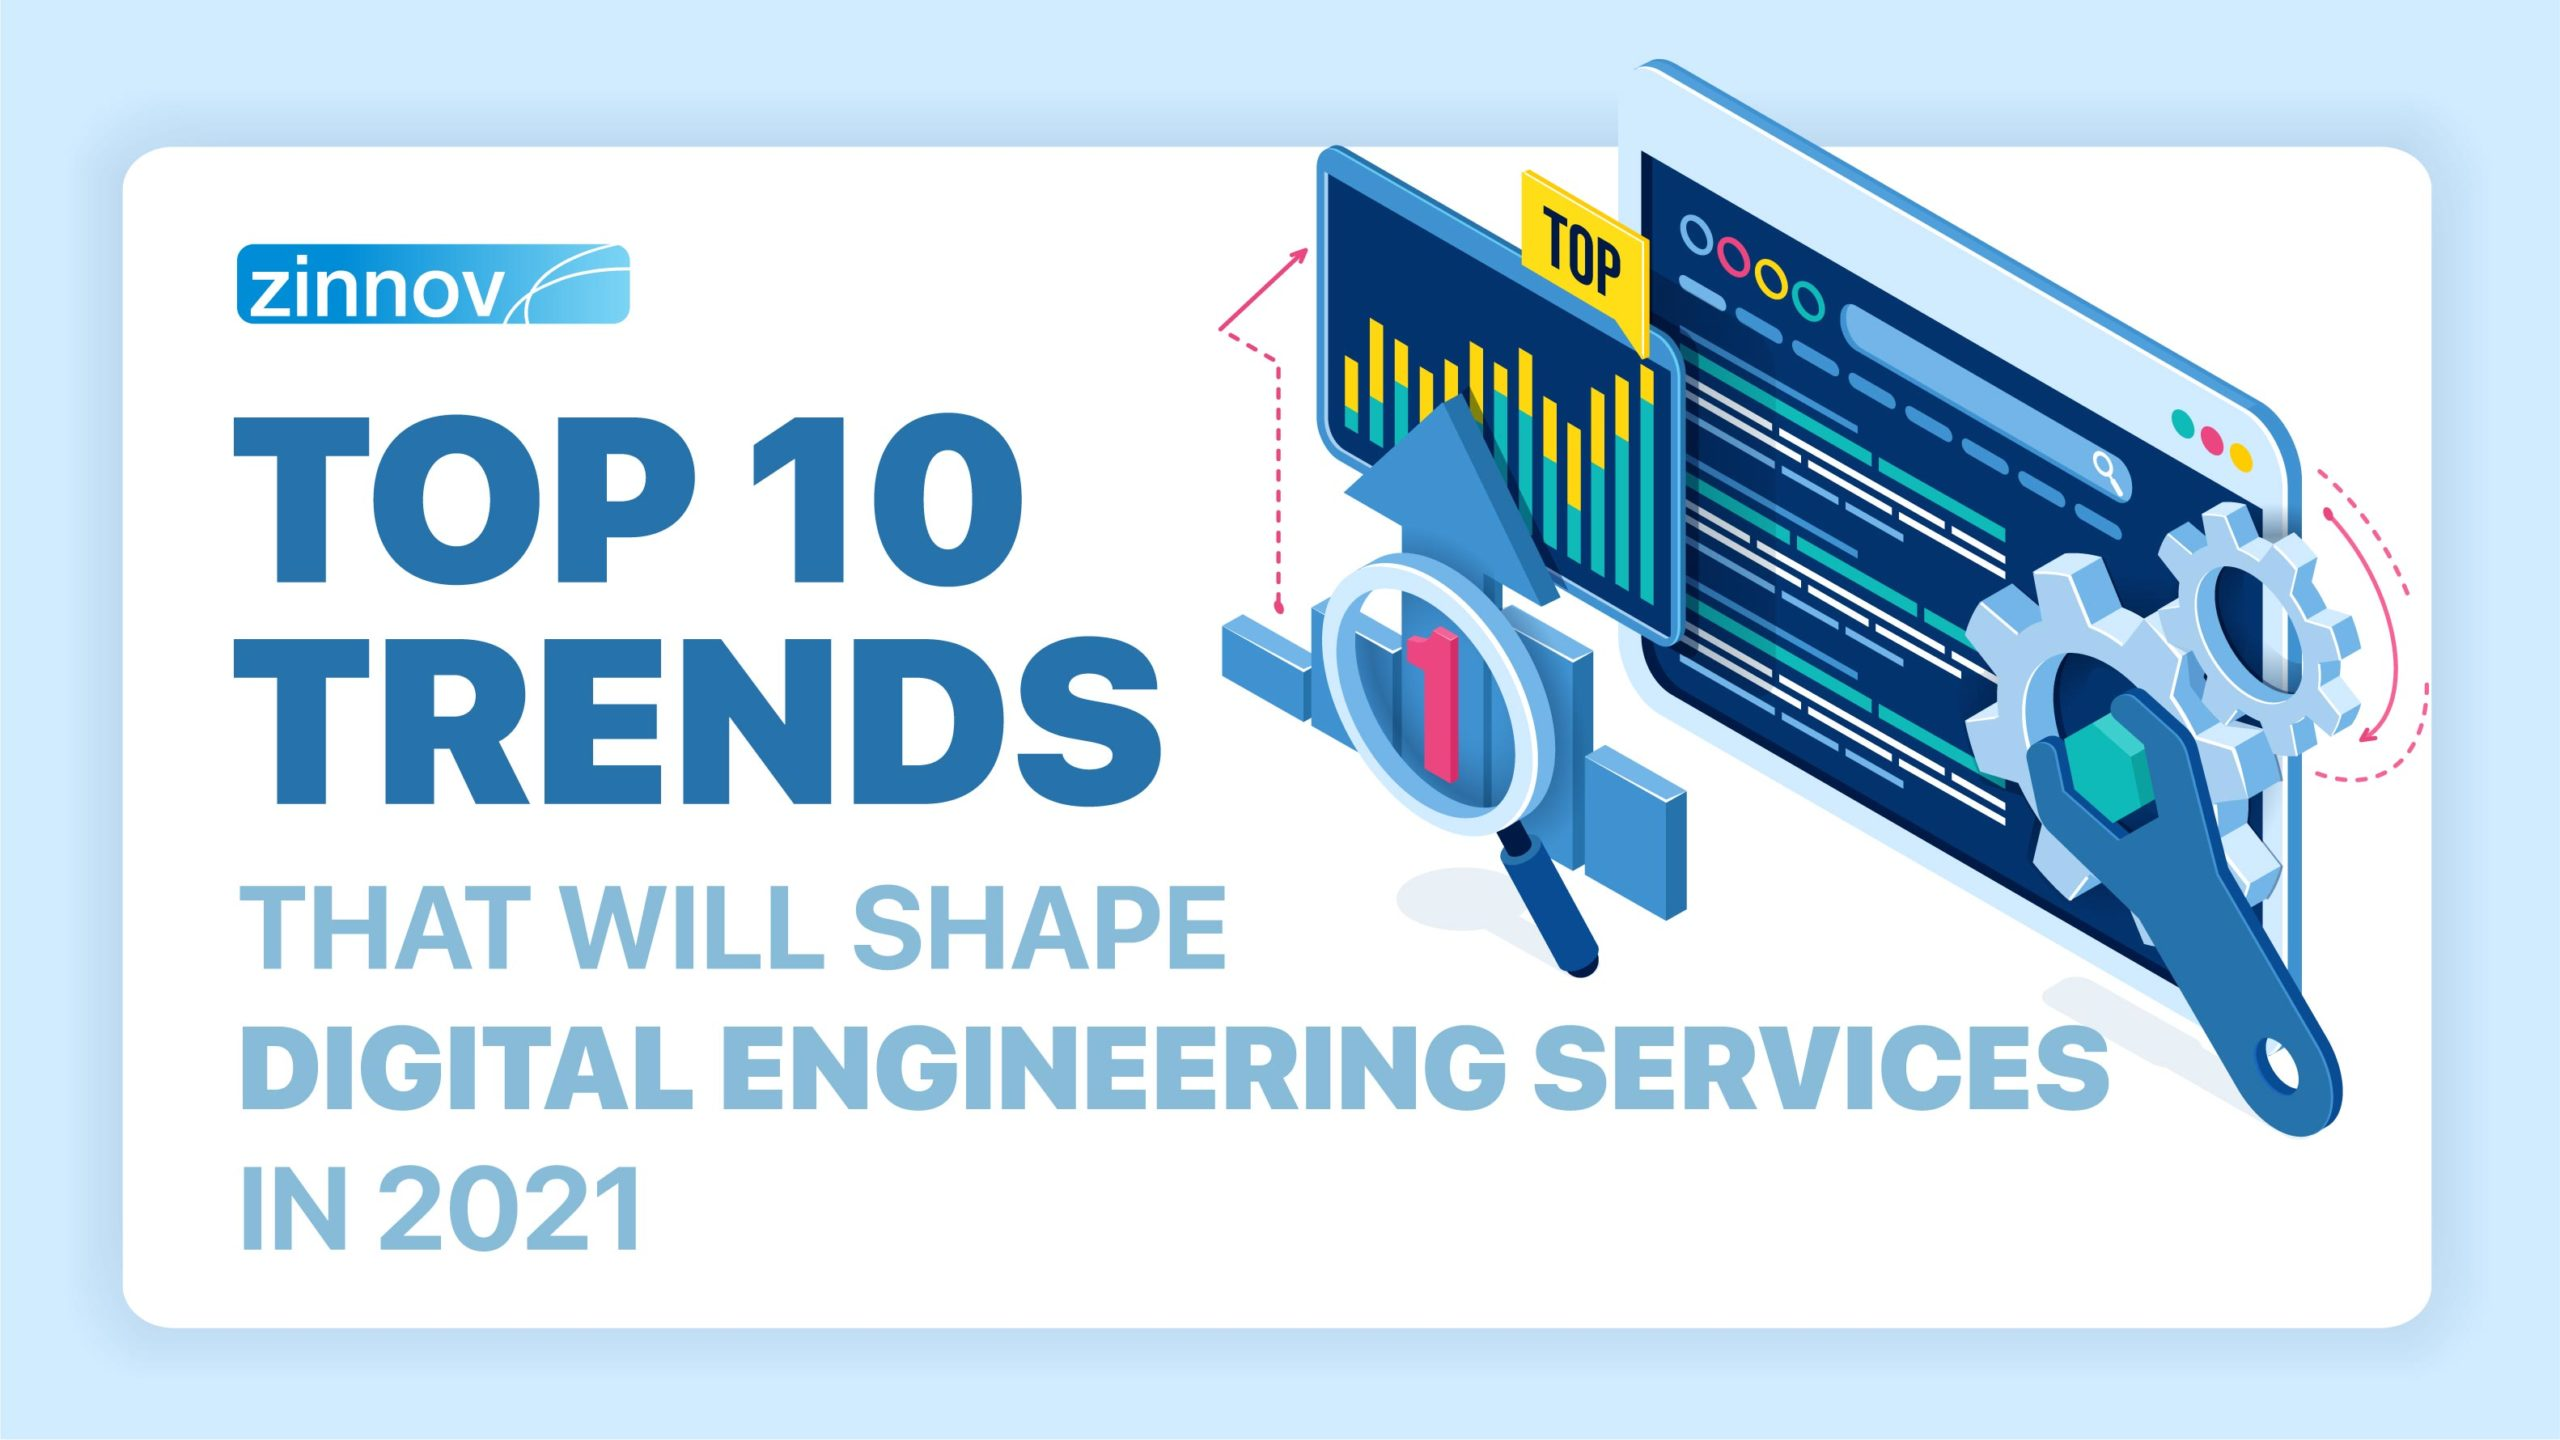 Digital Engineering services trends 2021